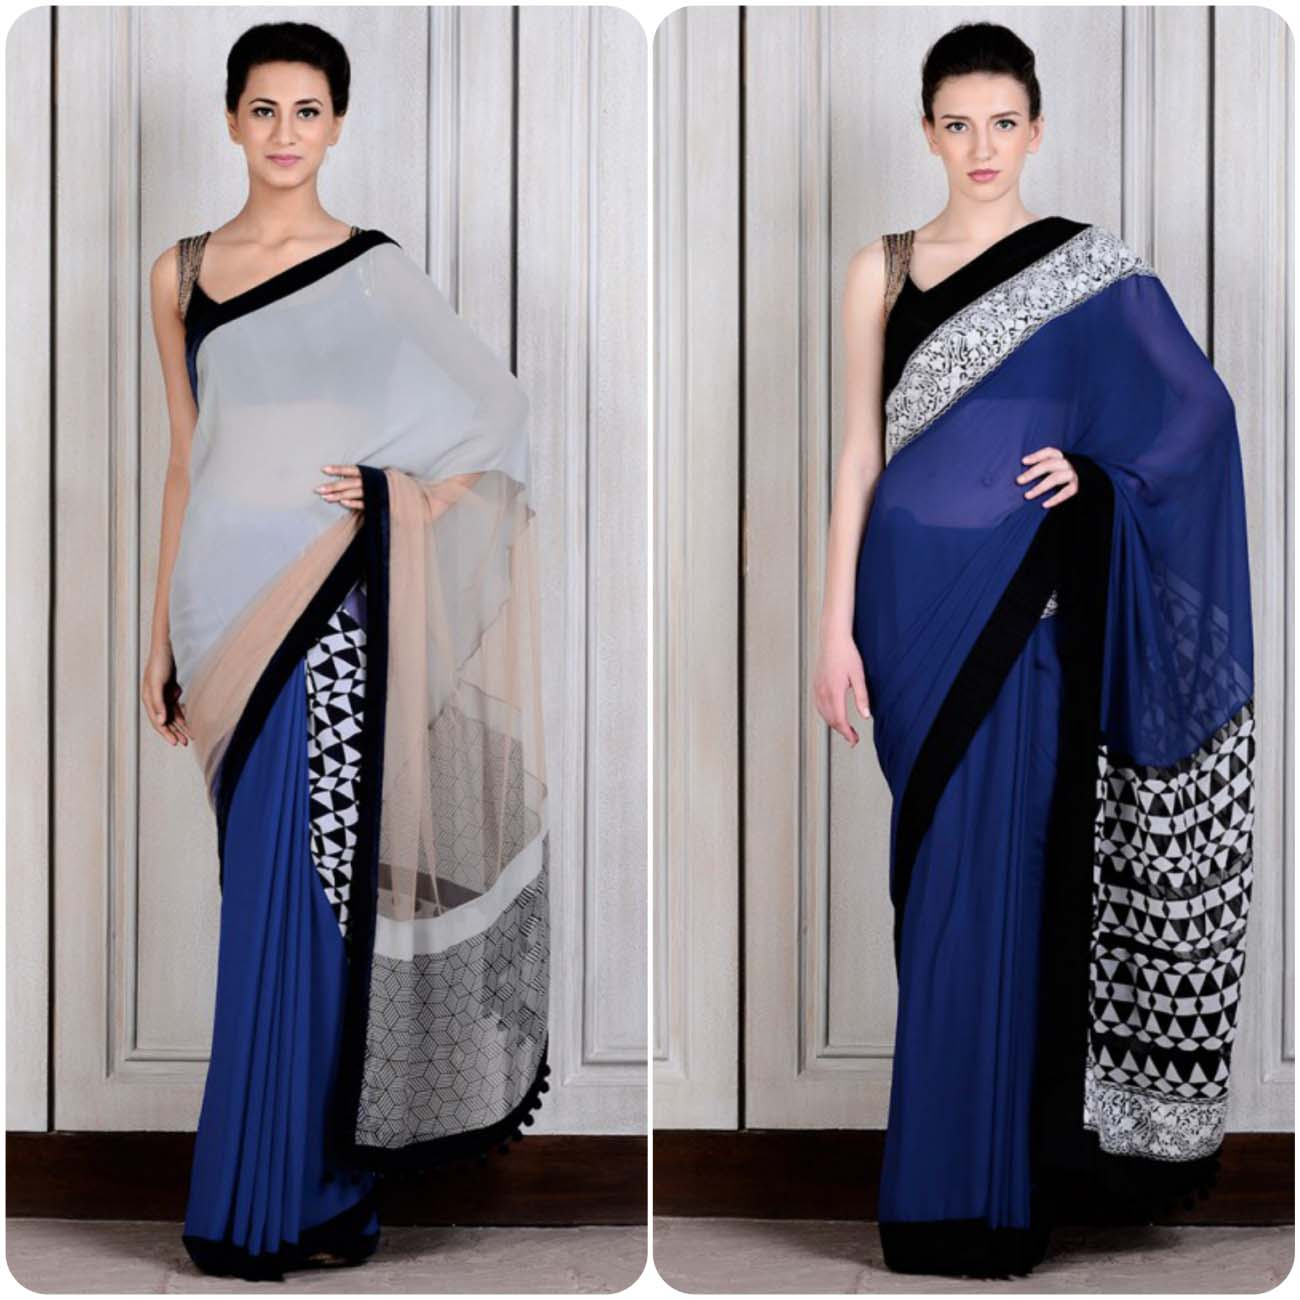 Manish Malhotra Designers Saree Collection 2016-2017...styloplanet (25)